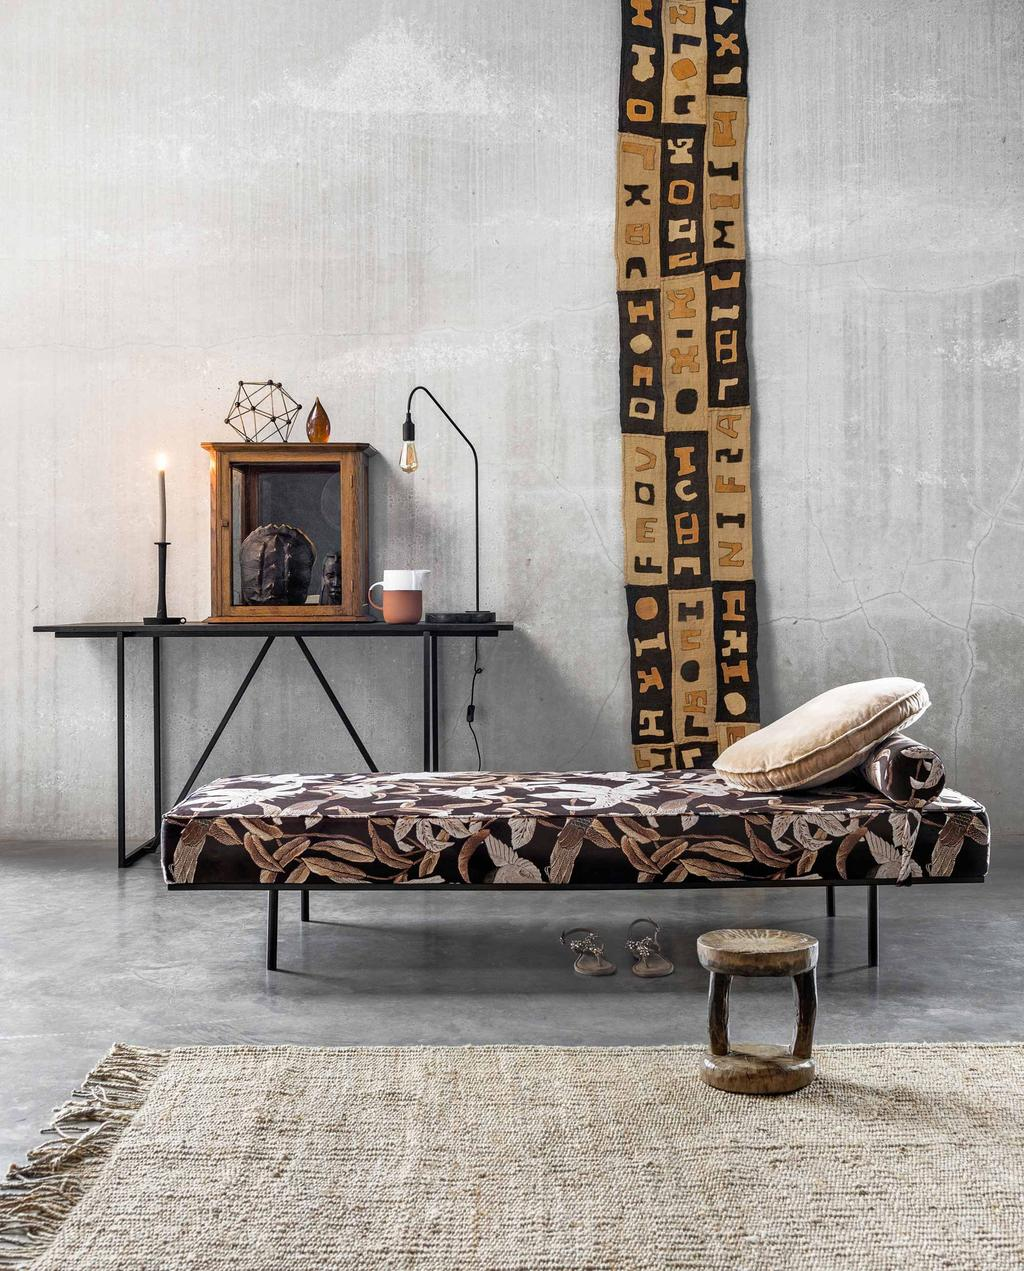 Tribal daybed met wandkleed